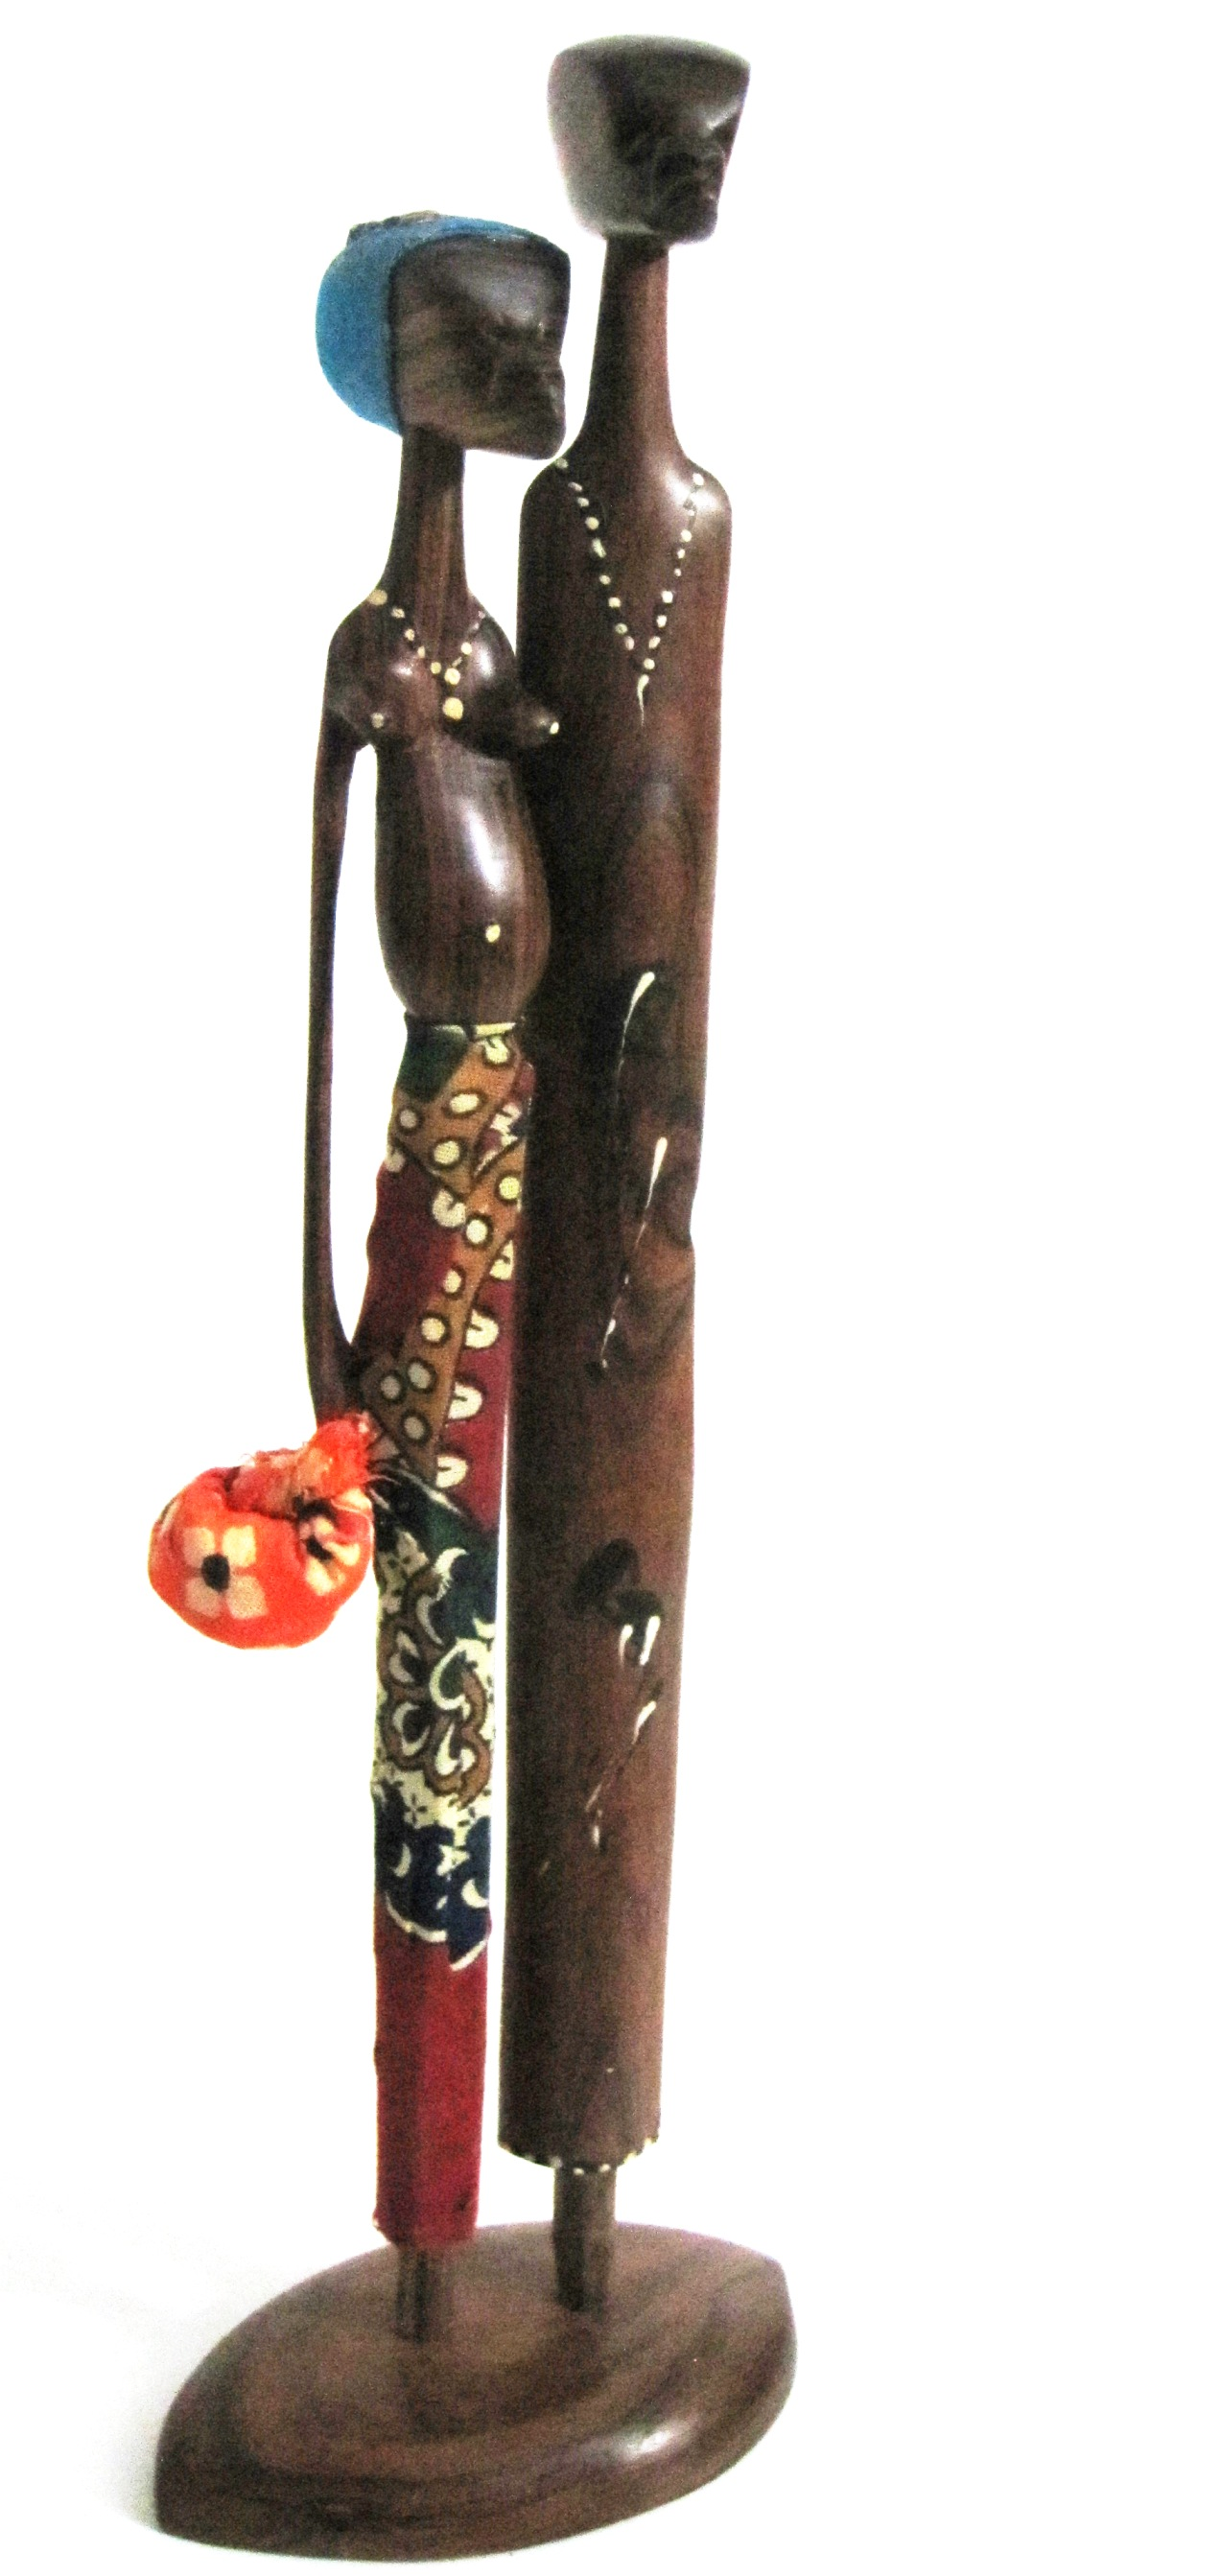 Village Friends Sandalwood Art #004